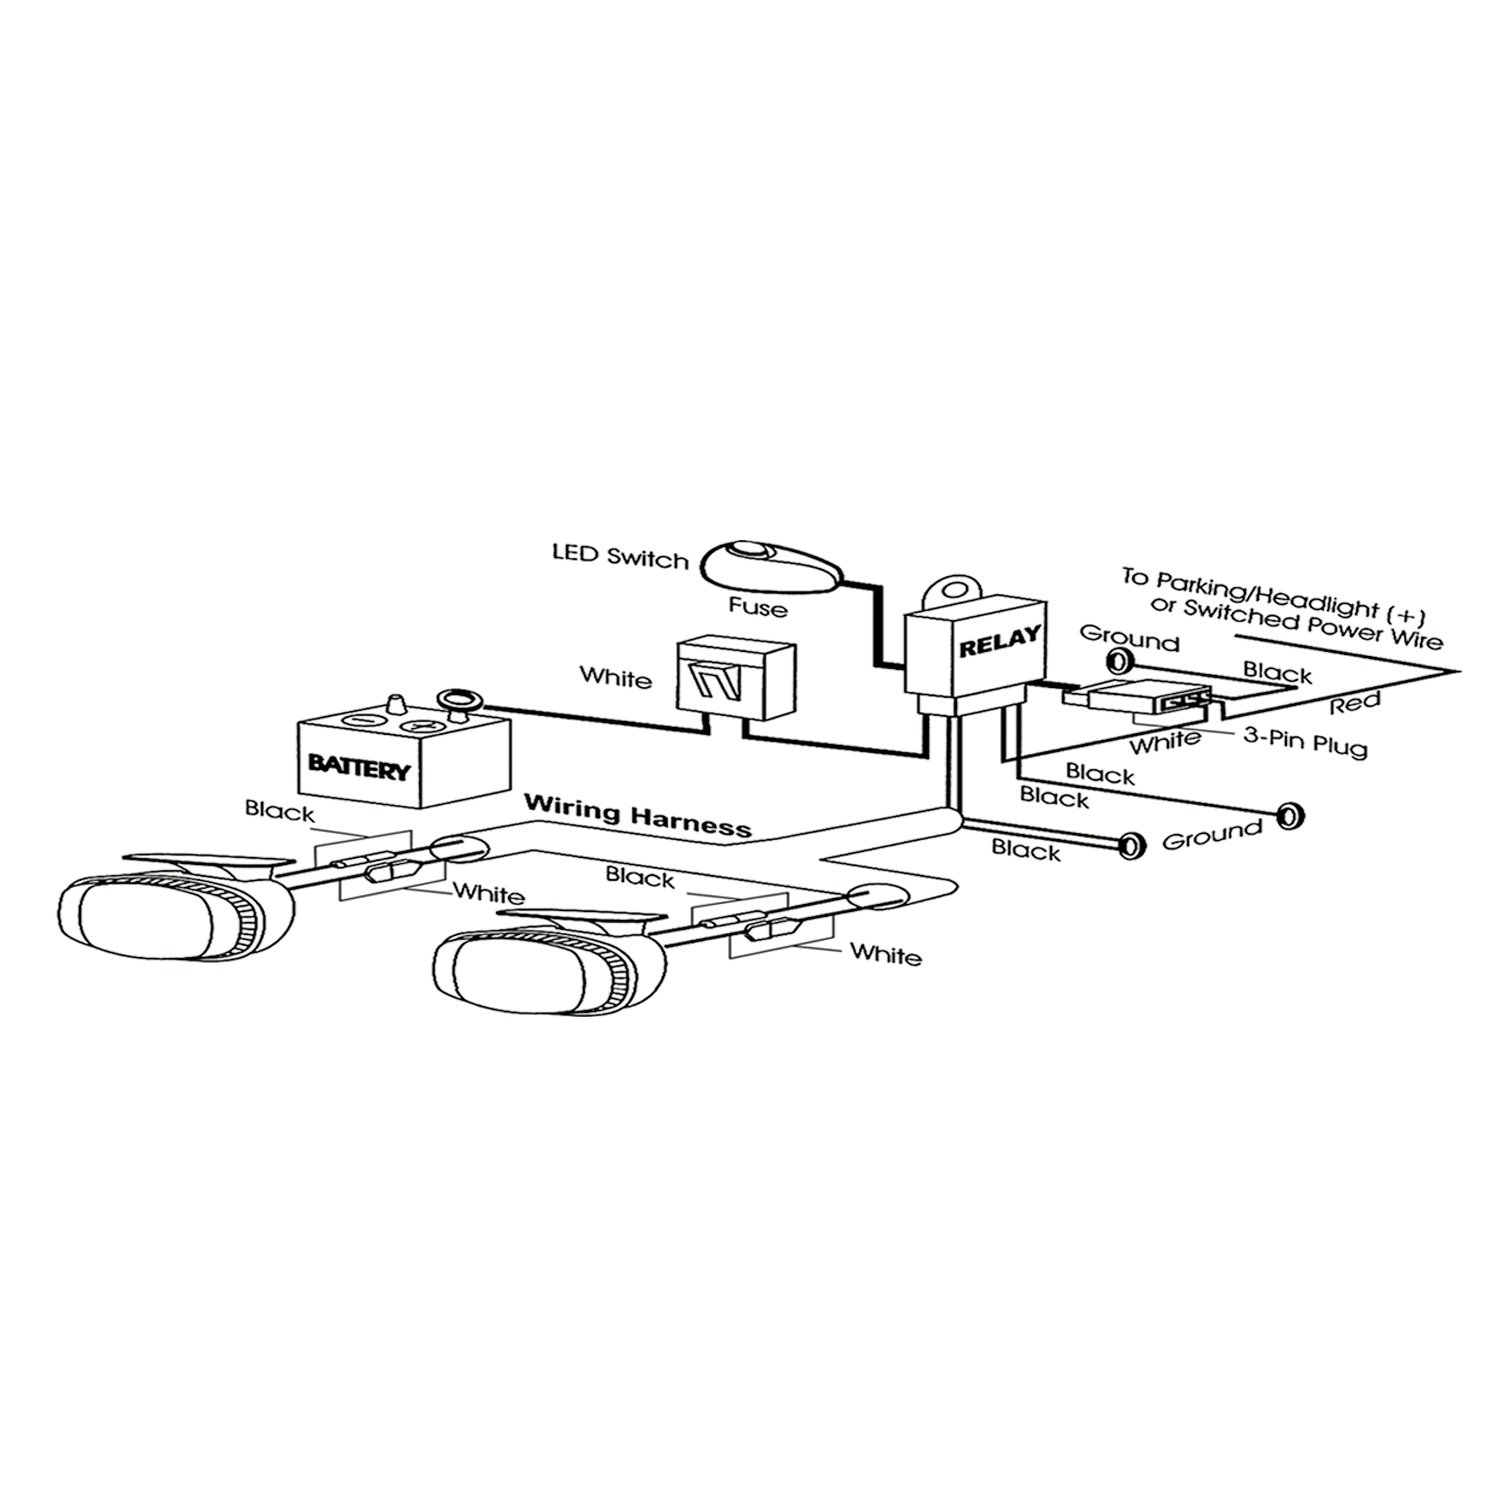 61HNbyyO7kL._SL1500_ amazon com anzousa 851062 lighting component automotive anzo wiring harness diagram at fashall.co